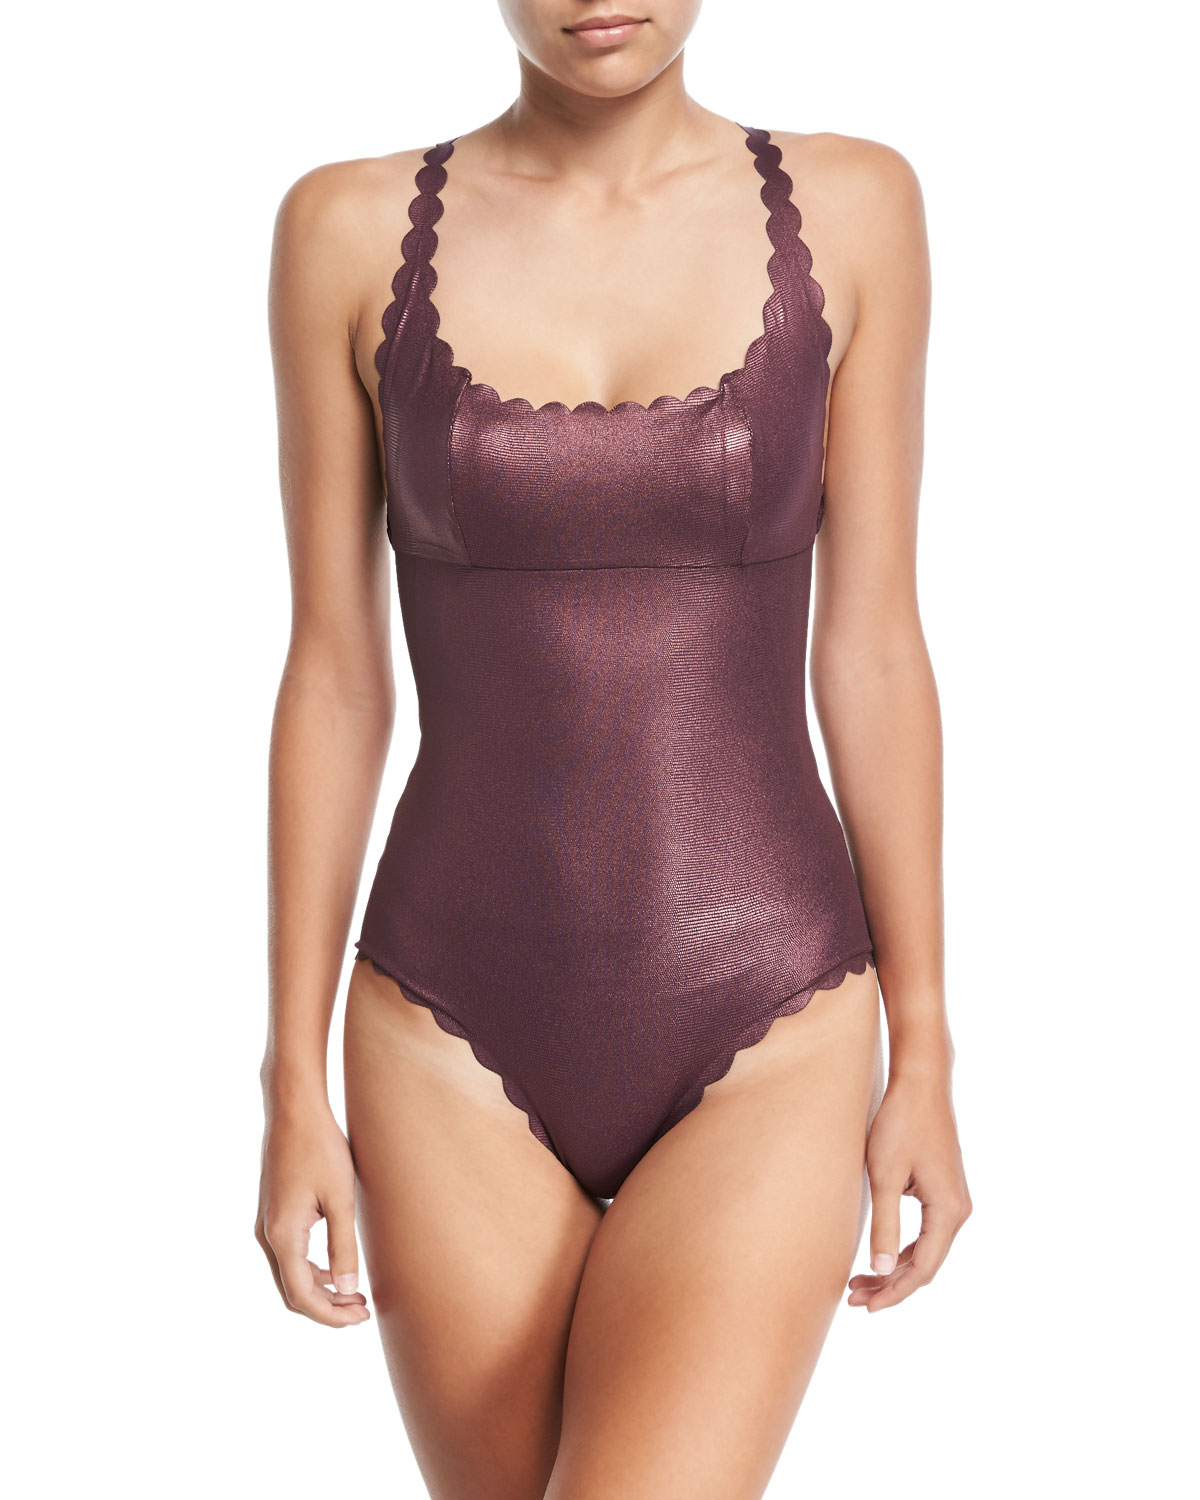 a564a61fd3ba6 PilyQ Gwen Reversible Seamless Wave One-Piece Swimsuit